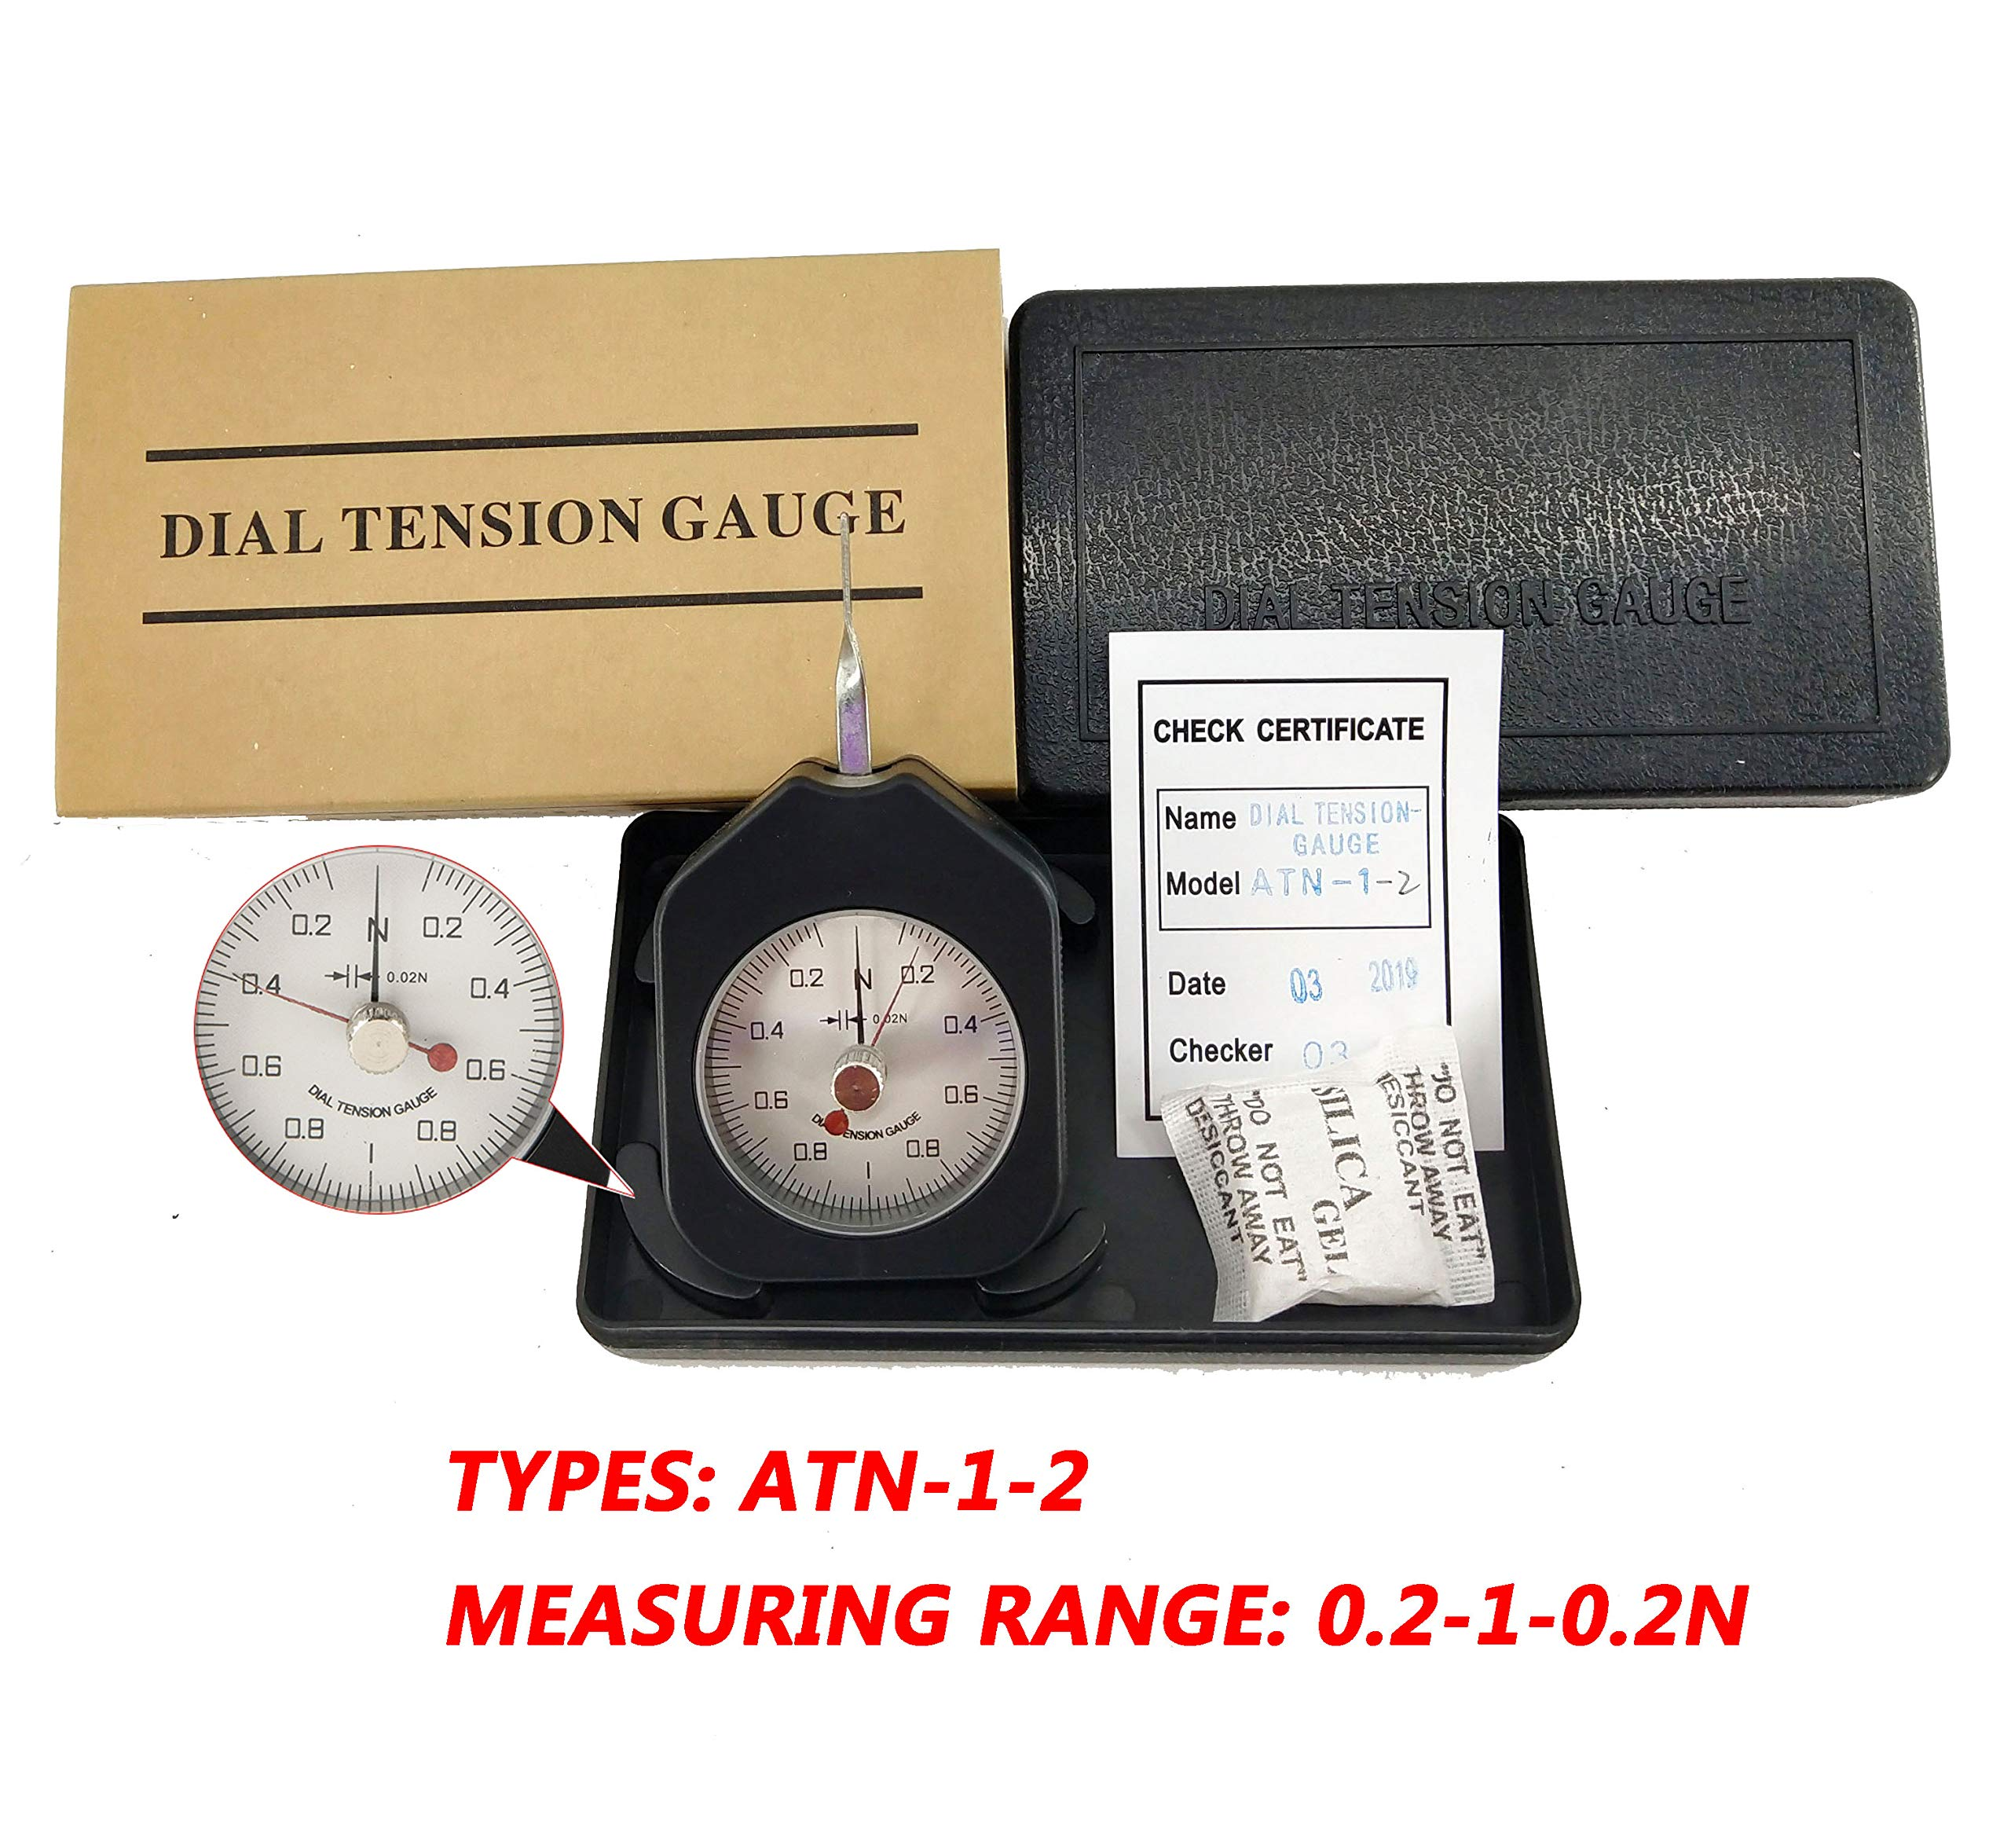 HFBTE ATN-1-2 Double Pointer Dial Tension Gauge with 0.2-1-0.2N Measurement Range Pocket Size Tensionmeter Tester